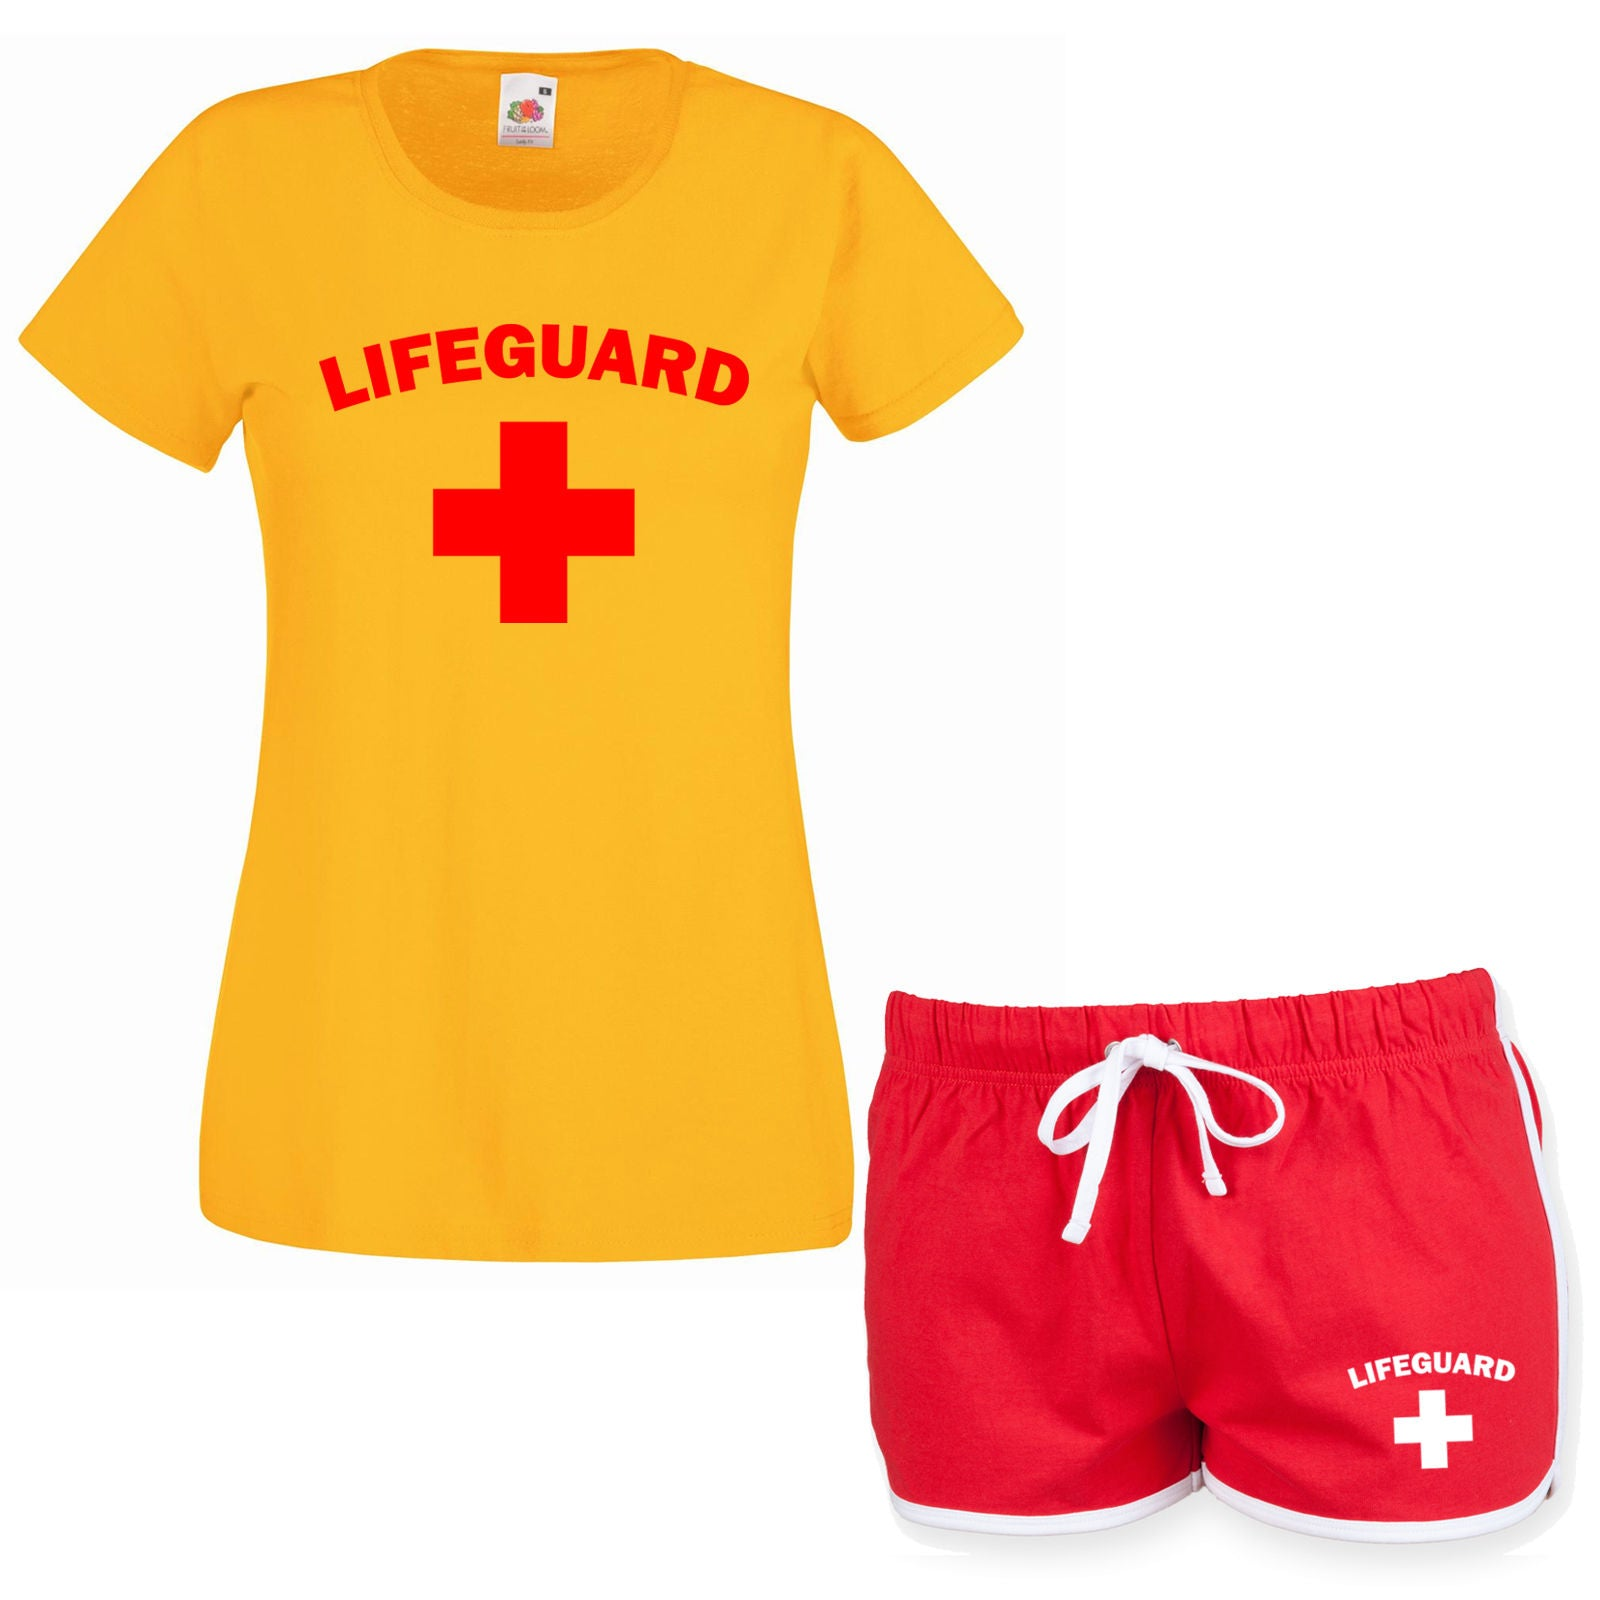 39dcef510d LIFEGUARD Ladies Yellow T Shirt & Red Shorts Fancy Dress Costume Outfit Set  Girl